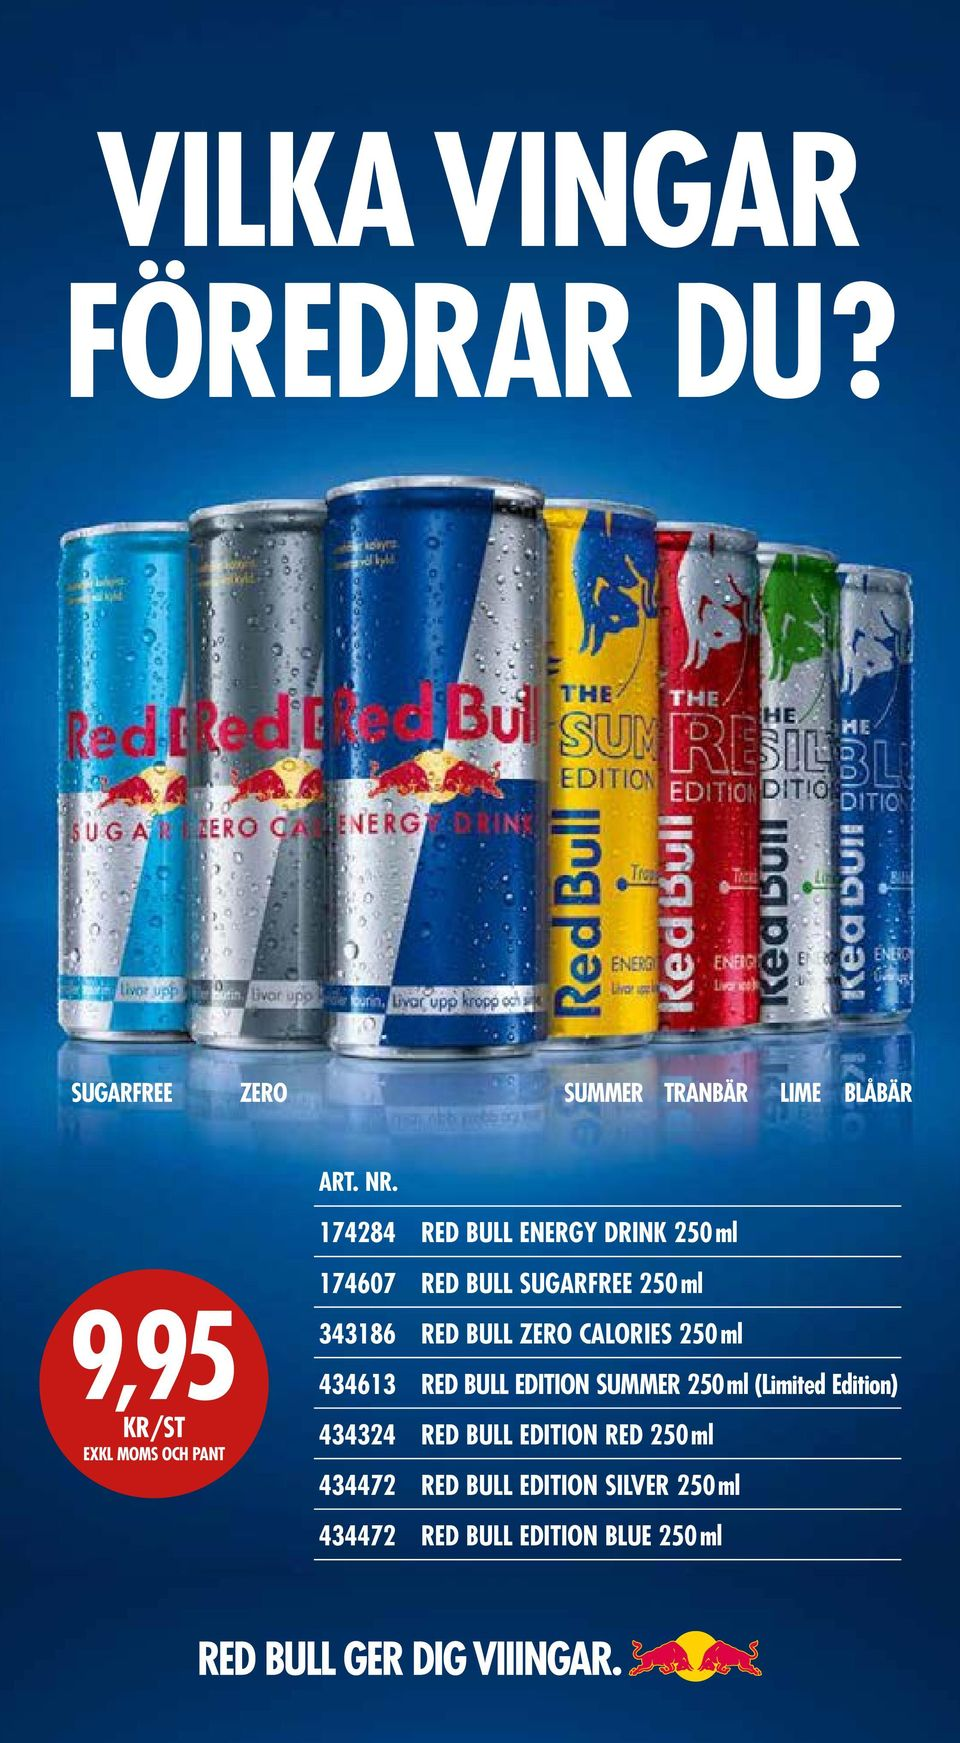 250ml 343186 RED BULL ZERO CALORIES 250ml 434613 RED BULL EDITION SUMMER 250ml (Limited